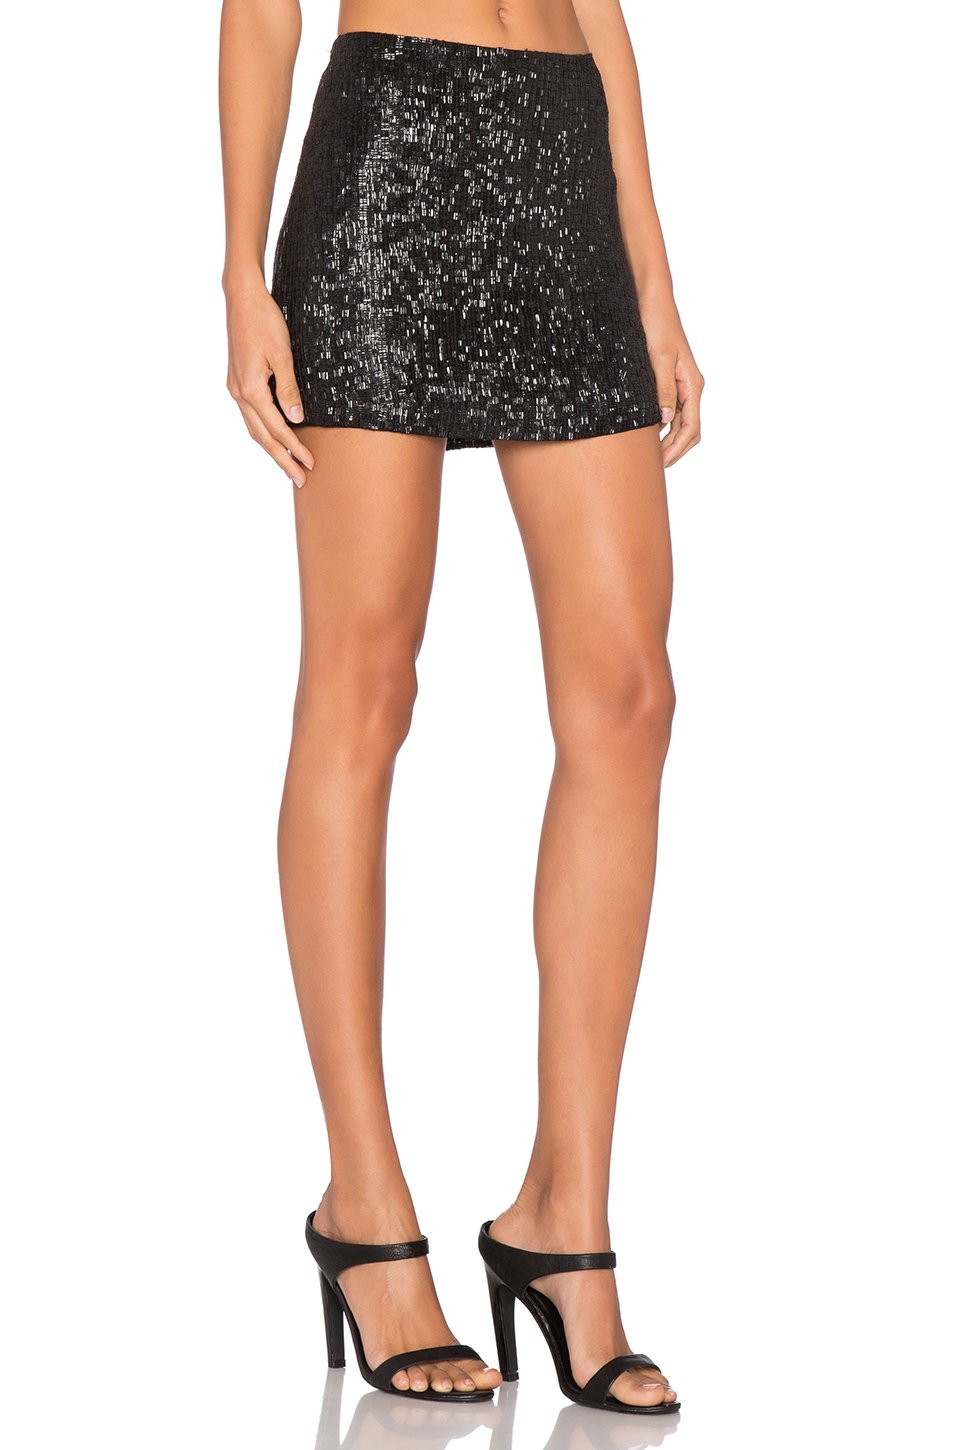 A black Alex Evenings plus size sequin skirt, worn with a white tunic-style top and black waist ribbon, is classic and elegant. Strappy heels and some colorful bracelets add detail to the look, or wear with embellished black pumps and a loose hairstyle to keep the look casual.